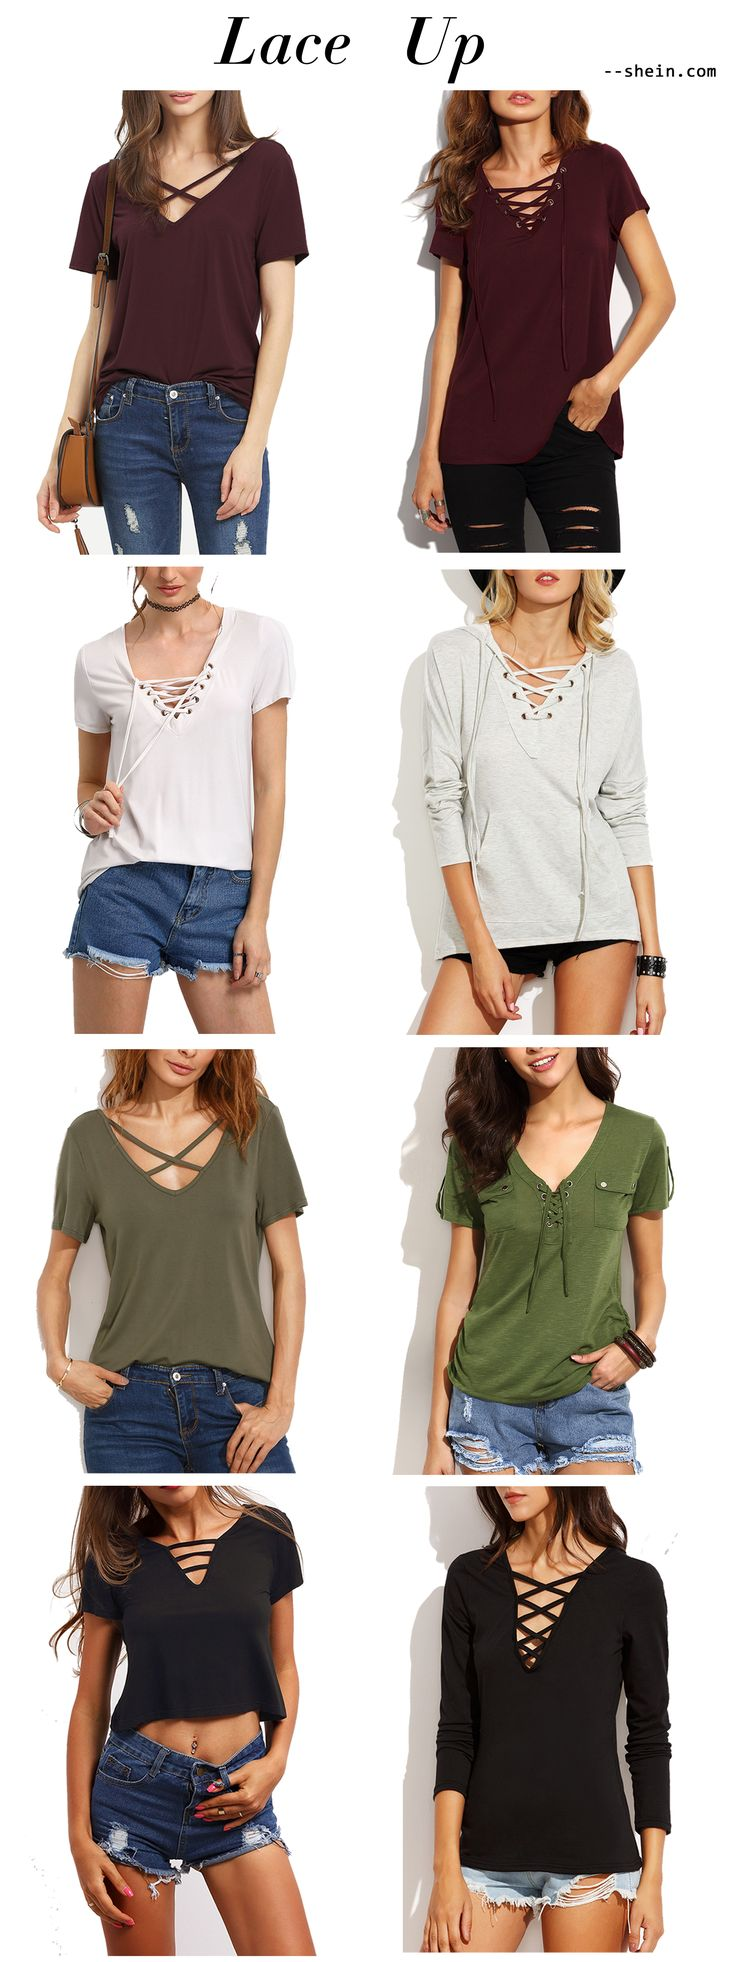 My favorite lace up top here by Shein. For me, casual chic & sexy style is a must!